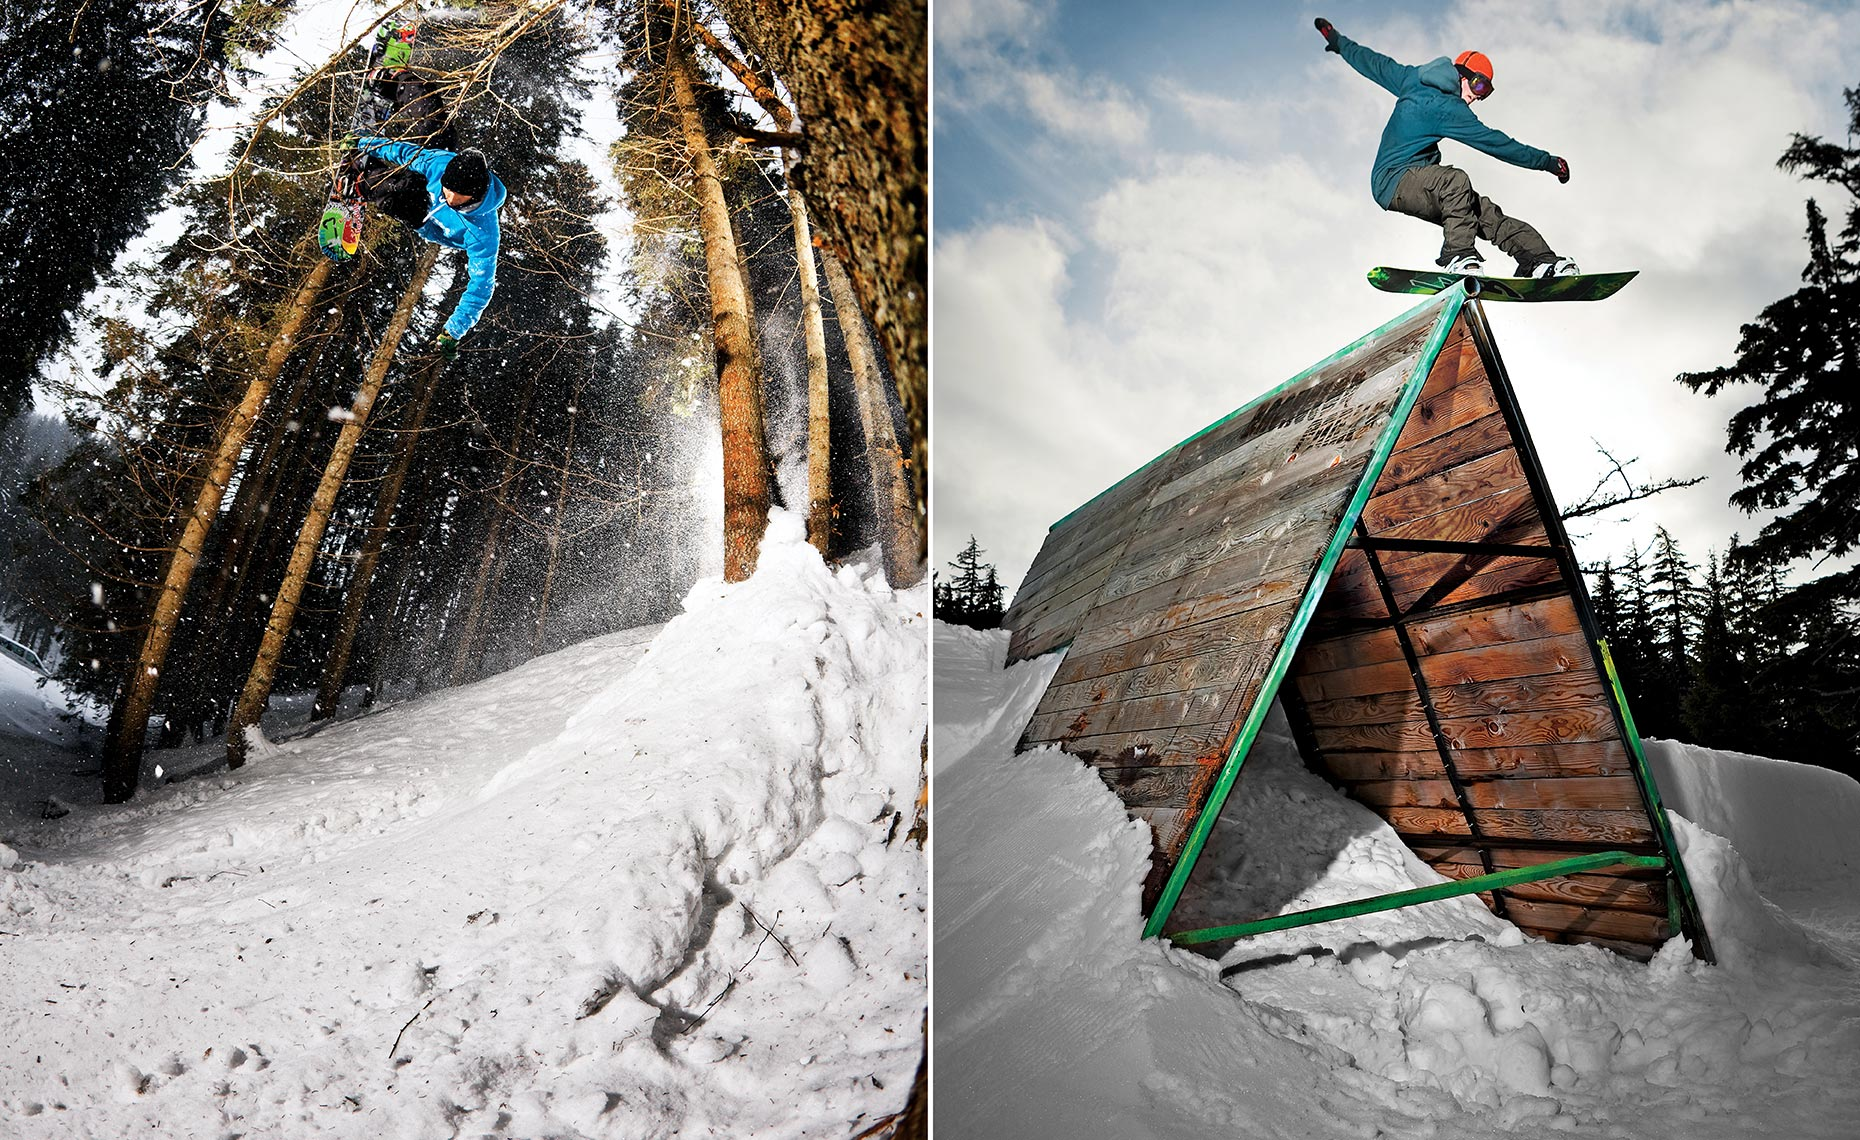 18_Marko_Grilo_Grilc_Slovenia_Tucker_Speer_Mt_Bachelor_Good_Wood_Snowboarding_Chris_Wellhausen_Photography.JPG